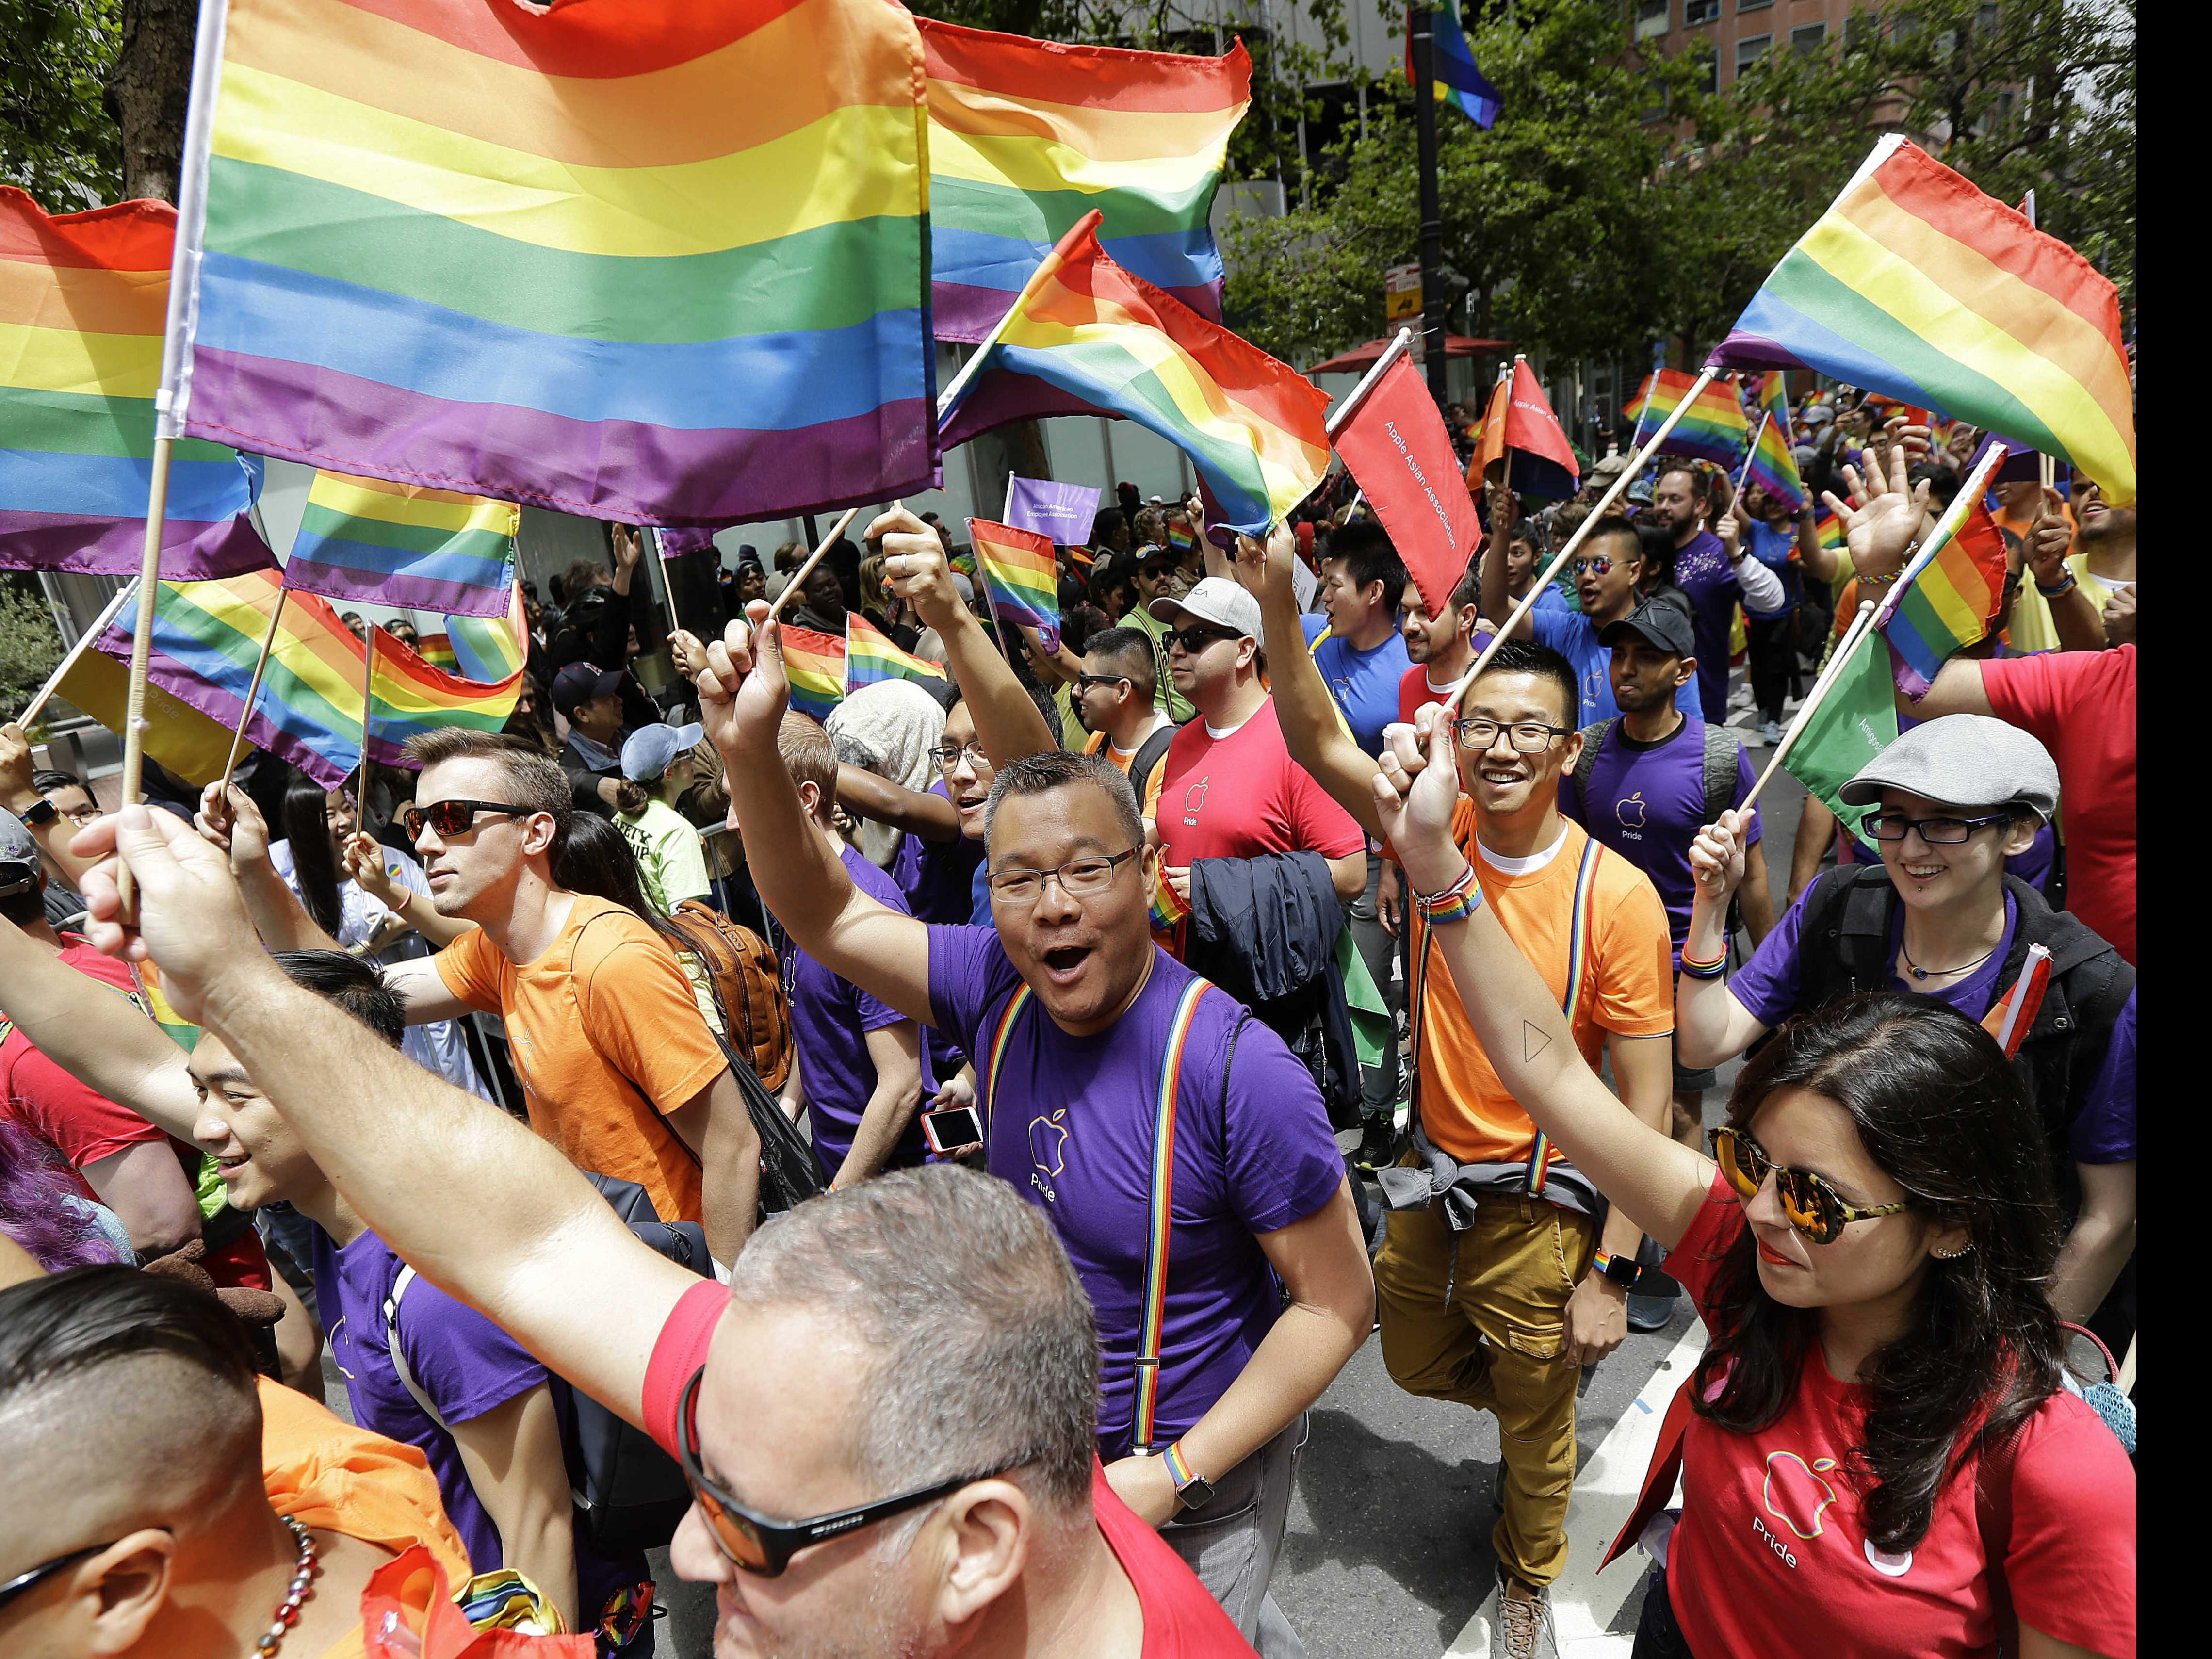 Pride Parade Revelers Feel Need to Stand Up for Rights